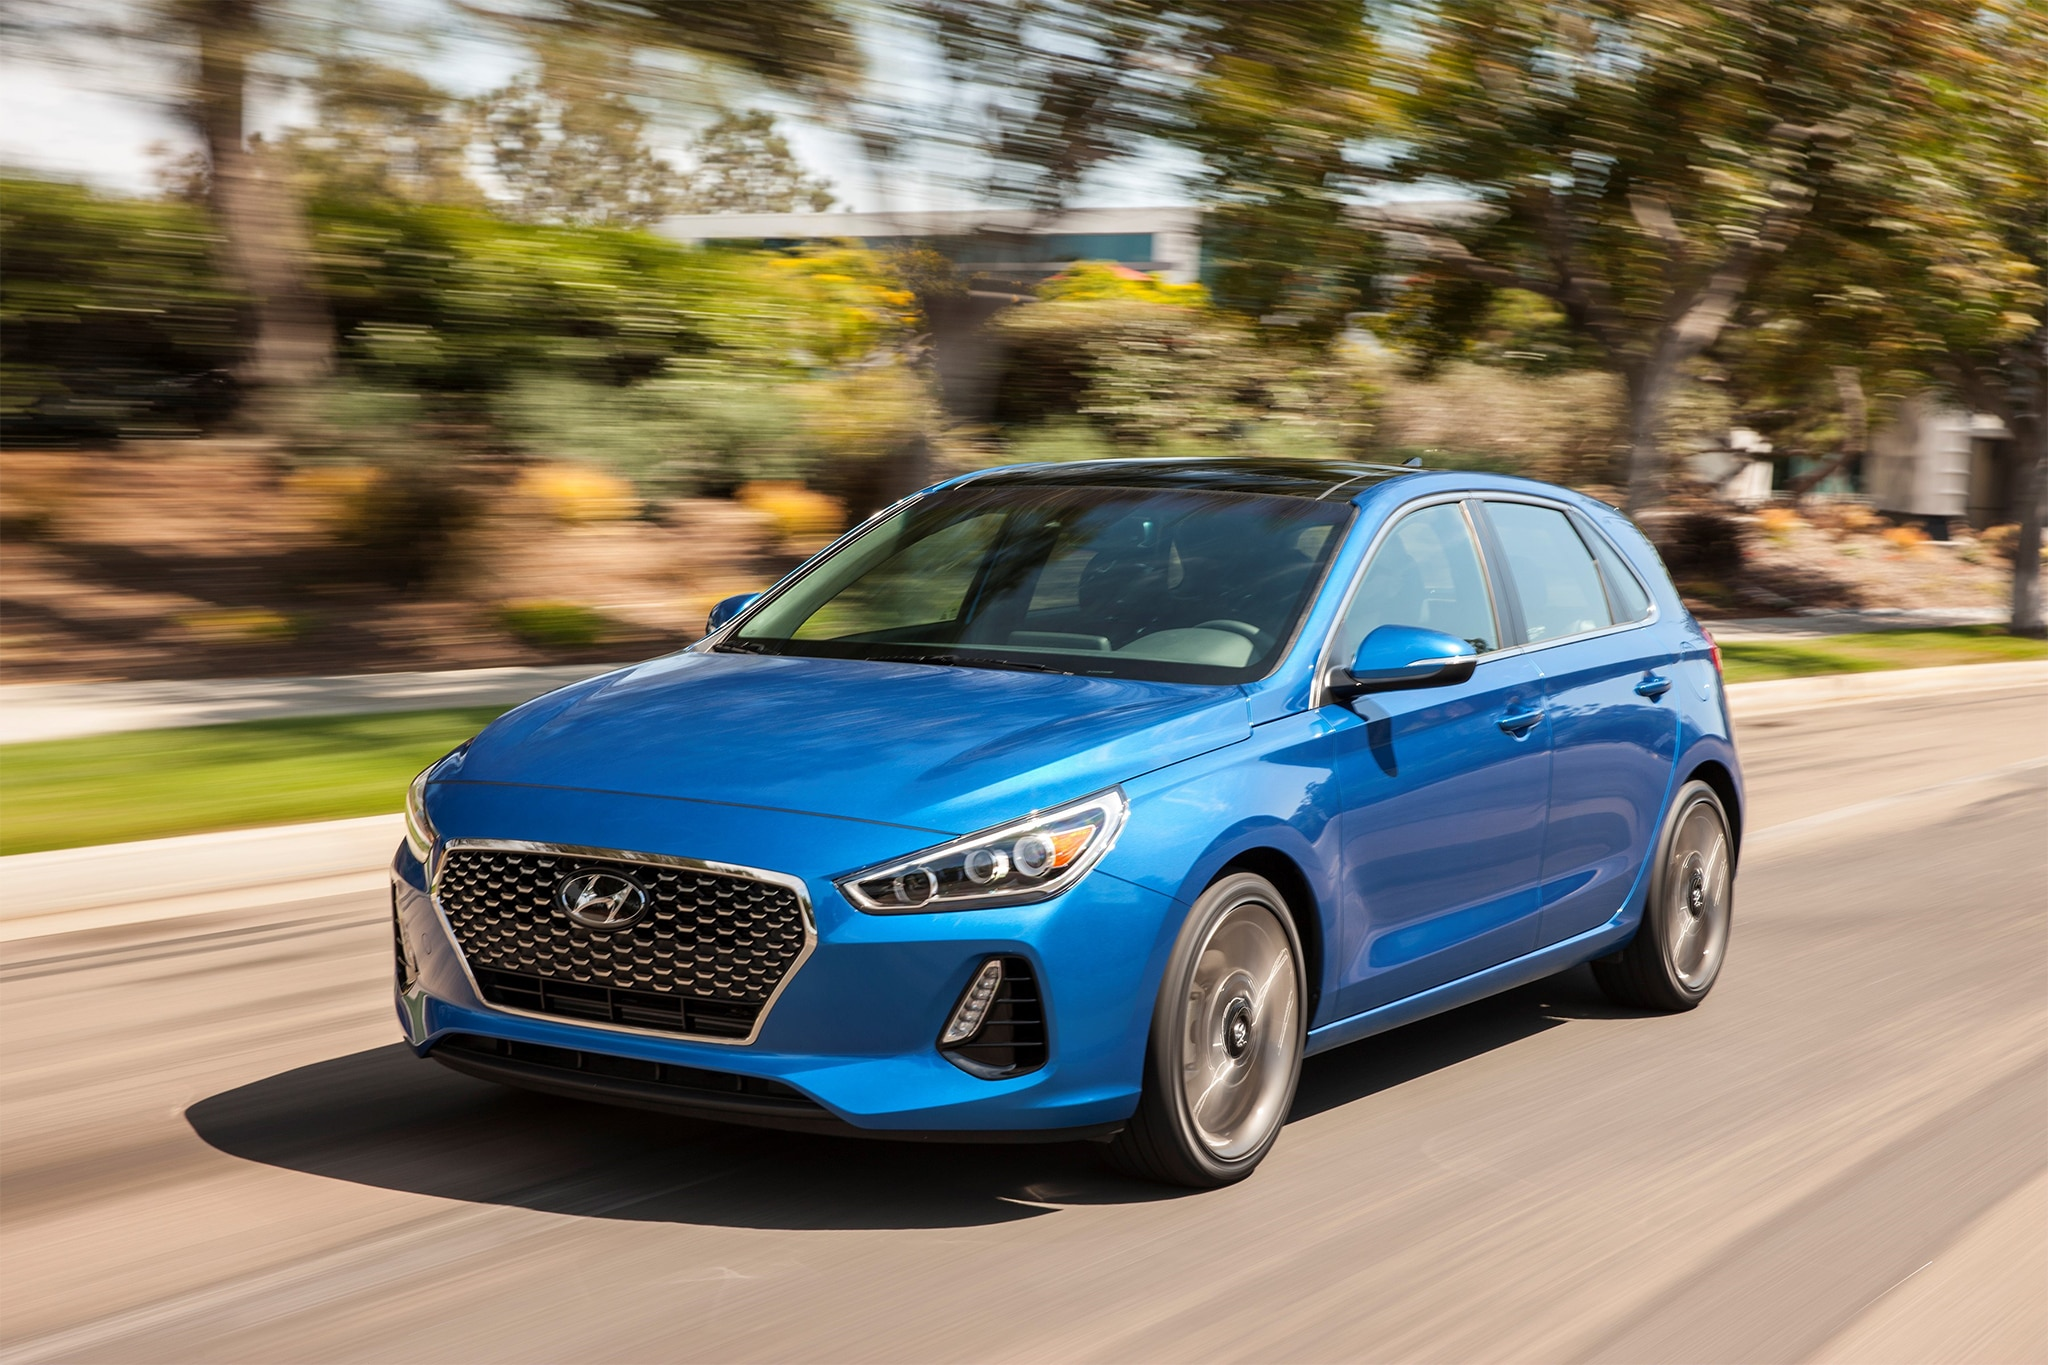 2018 Hyundai Elantra GT Sport Front Three Quarter In Motion 09